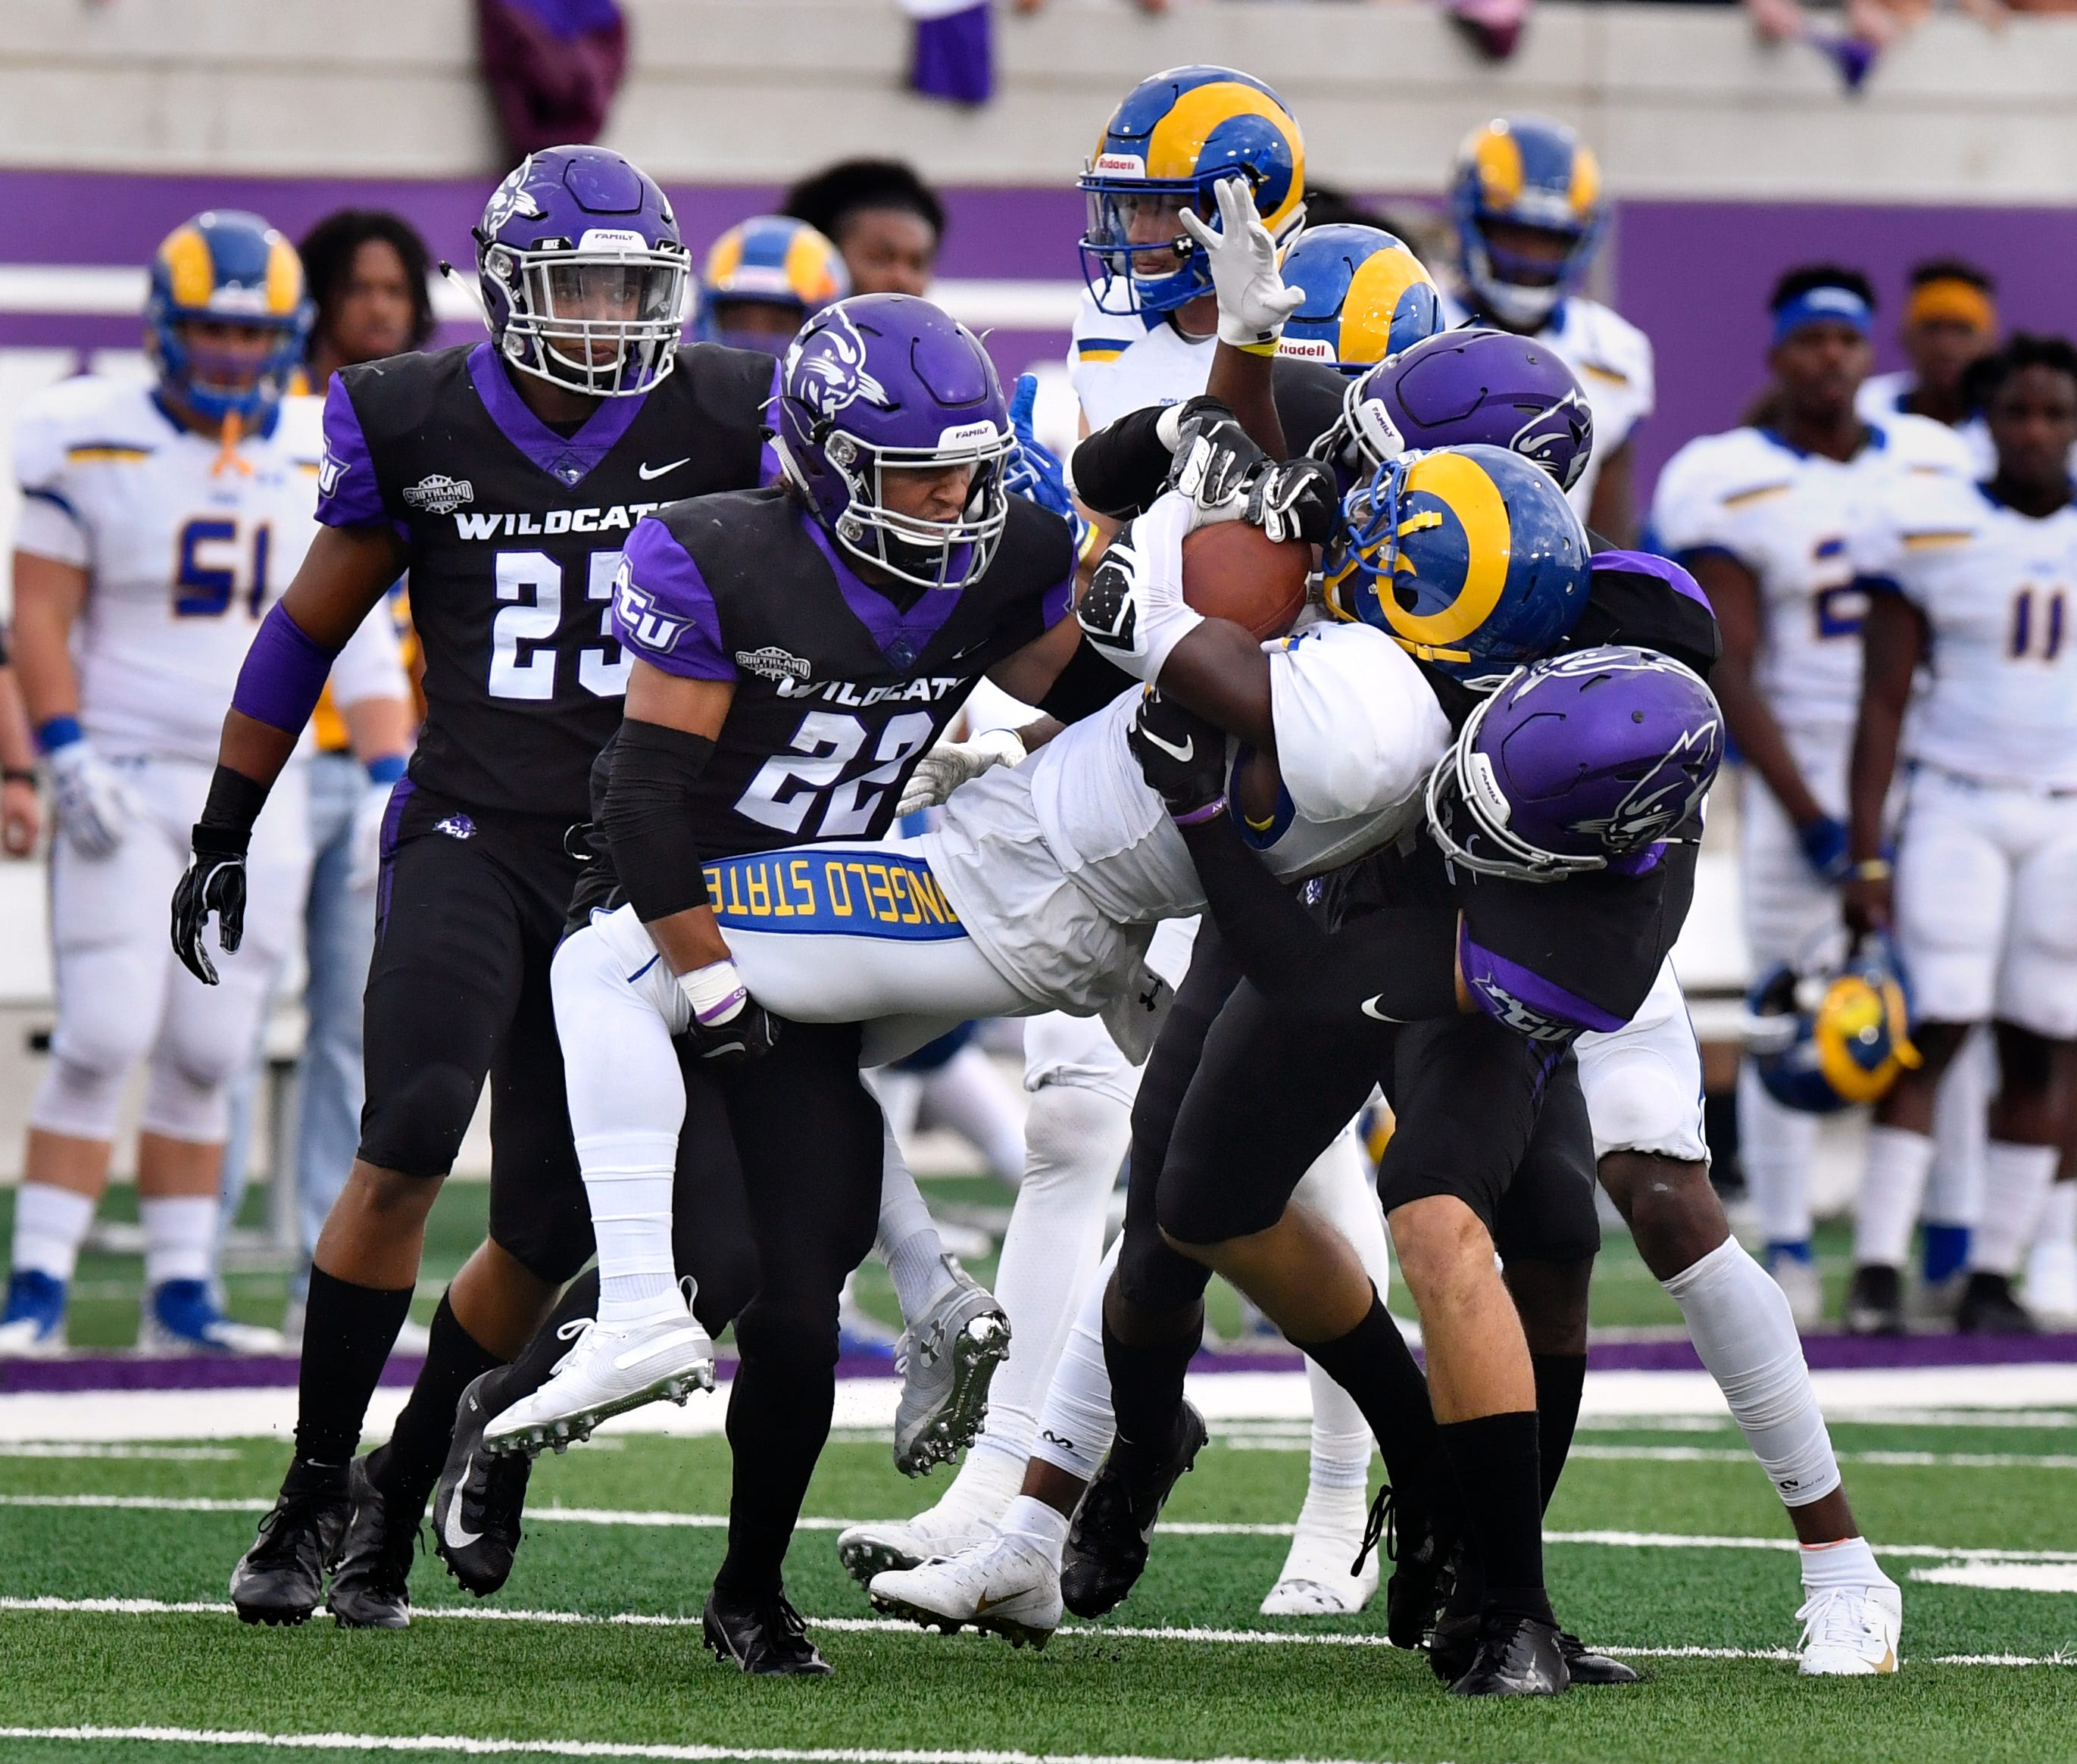 ACU linebacker Jeremiah Chambers (23) looks on as cornerback Koy Richardson (22) and another teammate tackle Angelo State receiver Alize Thomas during a nonconference game Sept. 8 at Wildcat Stadium. ACU won the game 41-24.